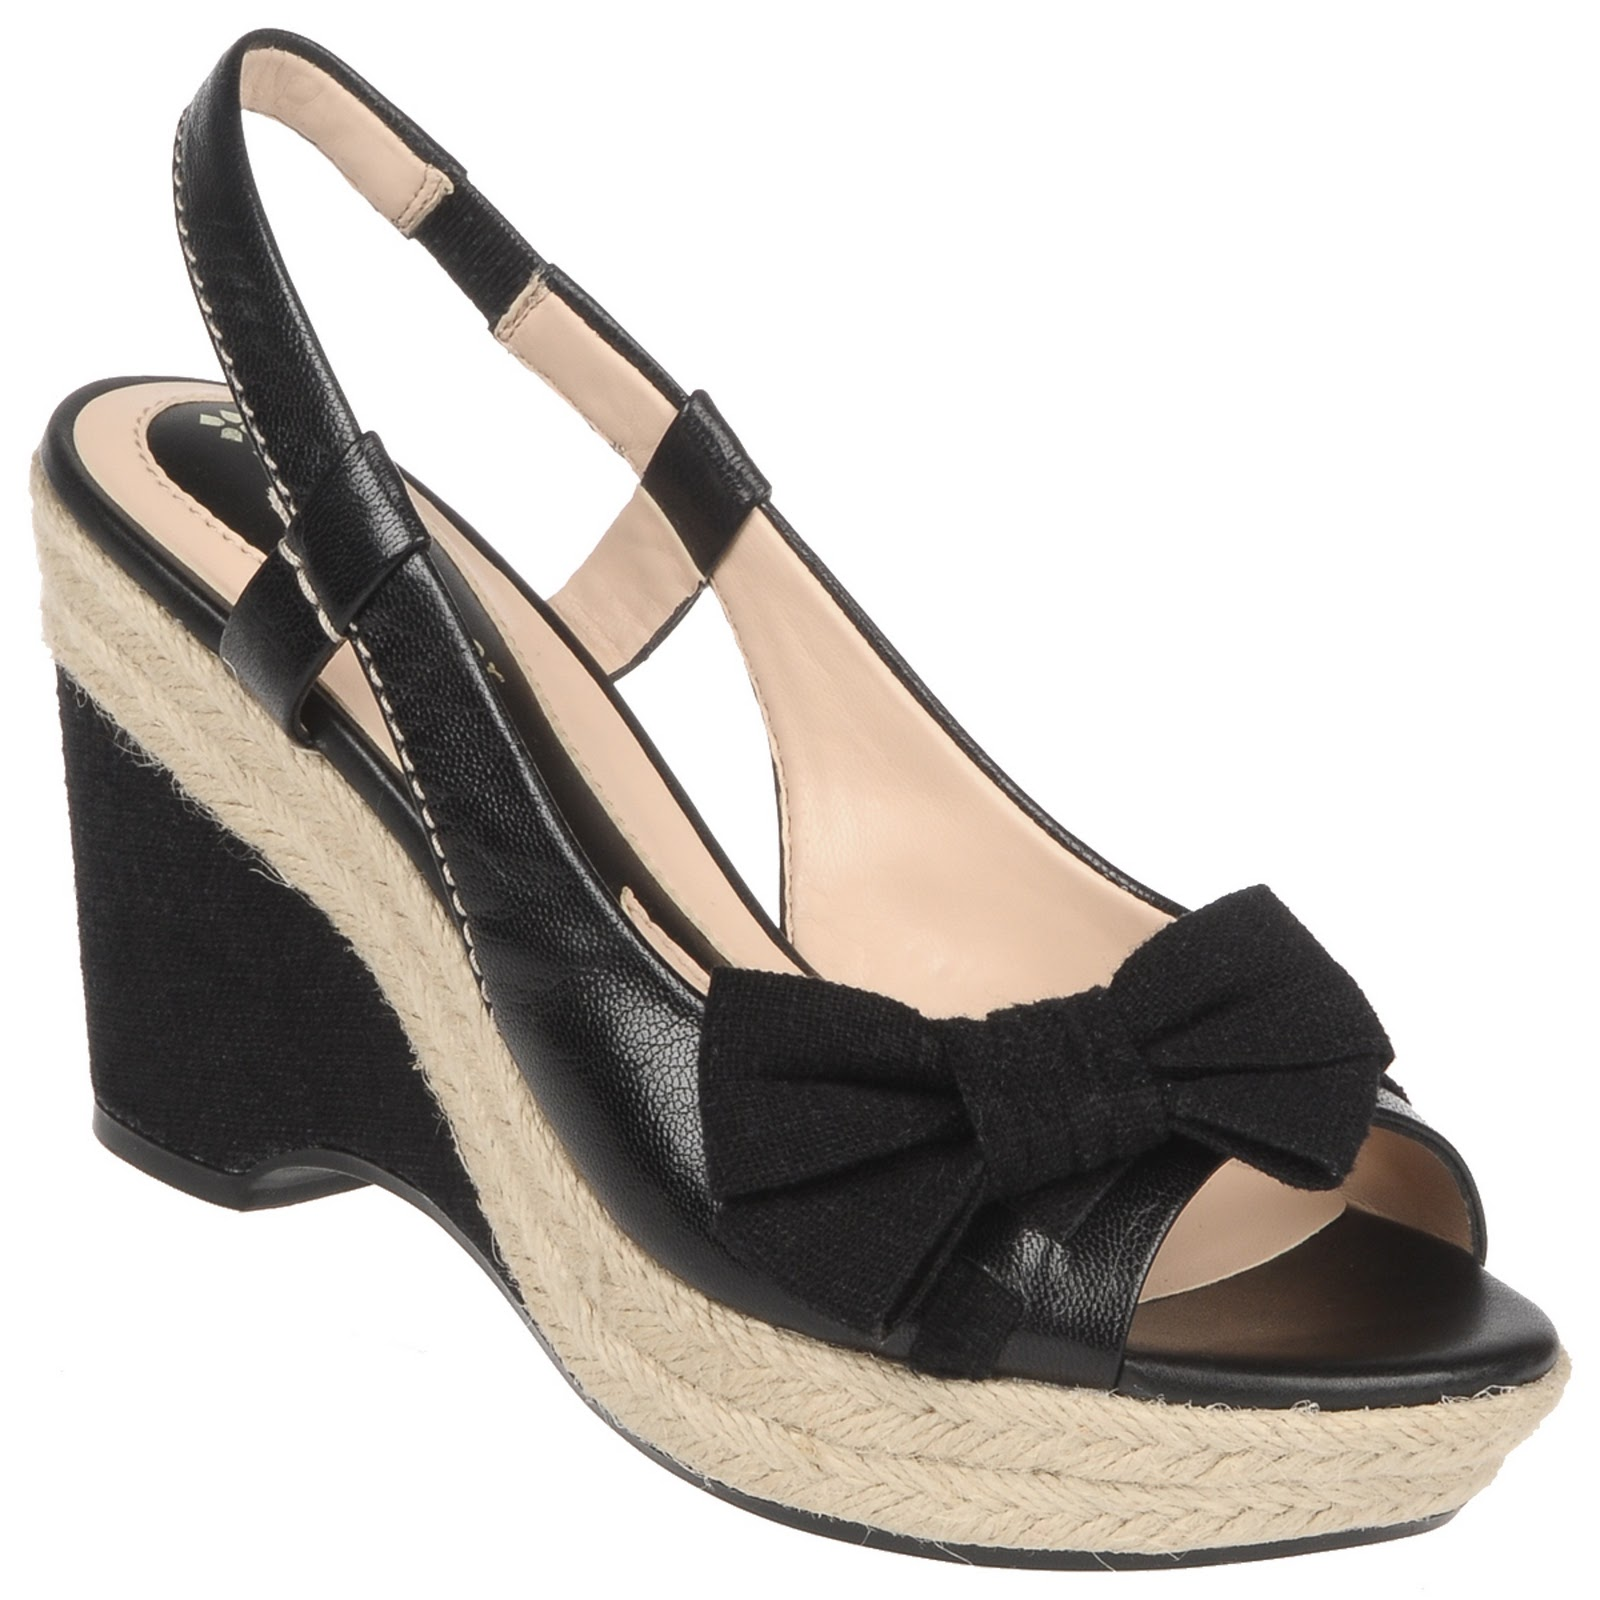 Wedge sandals Shoes Black  Shipped Free at Zappos